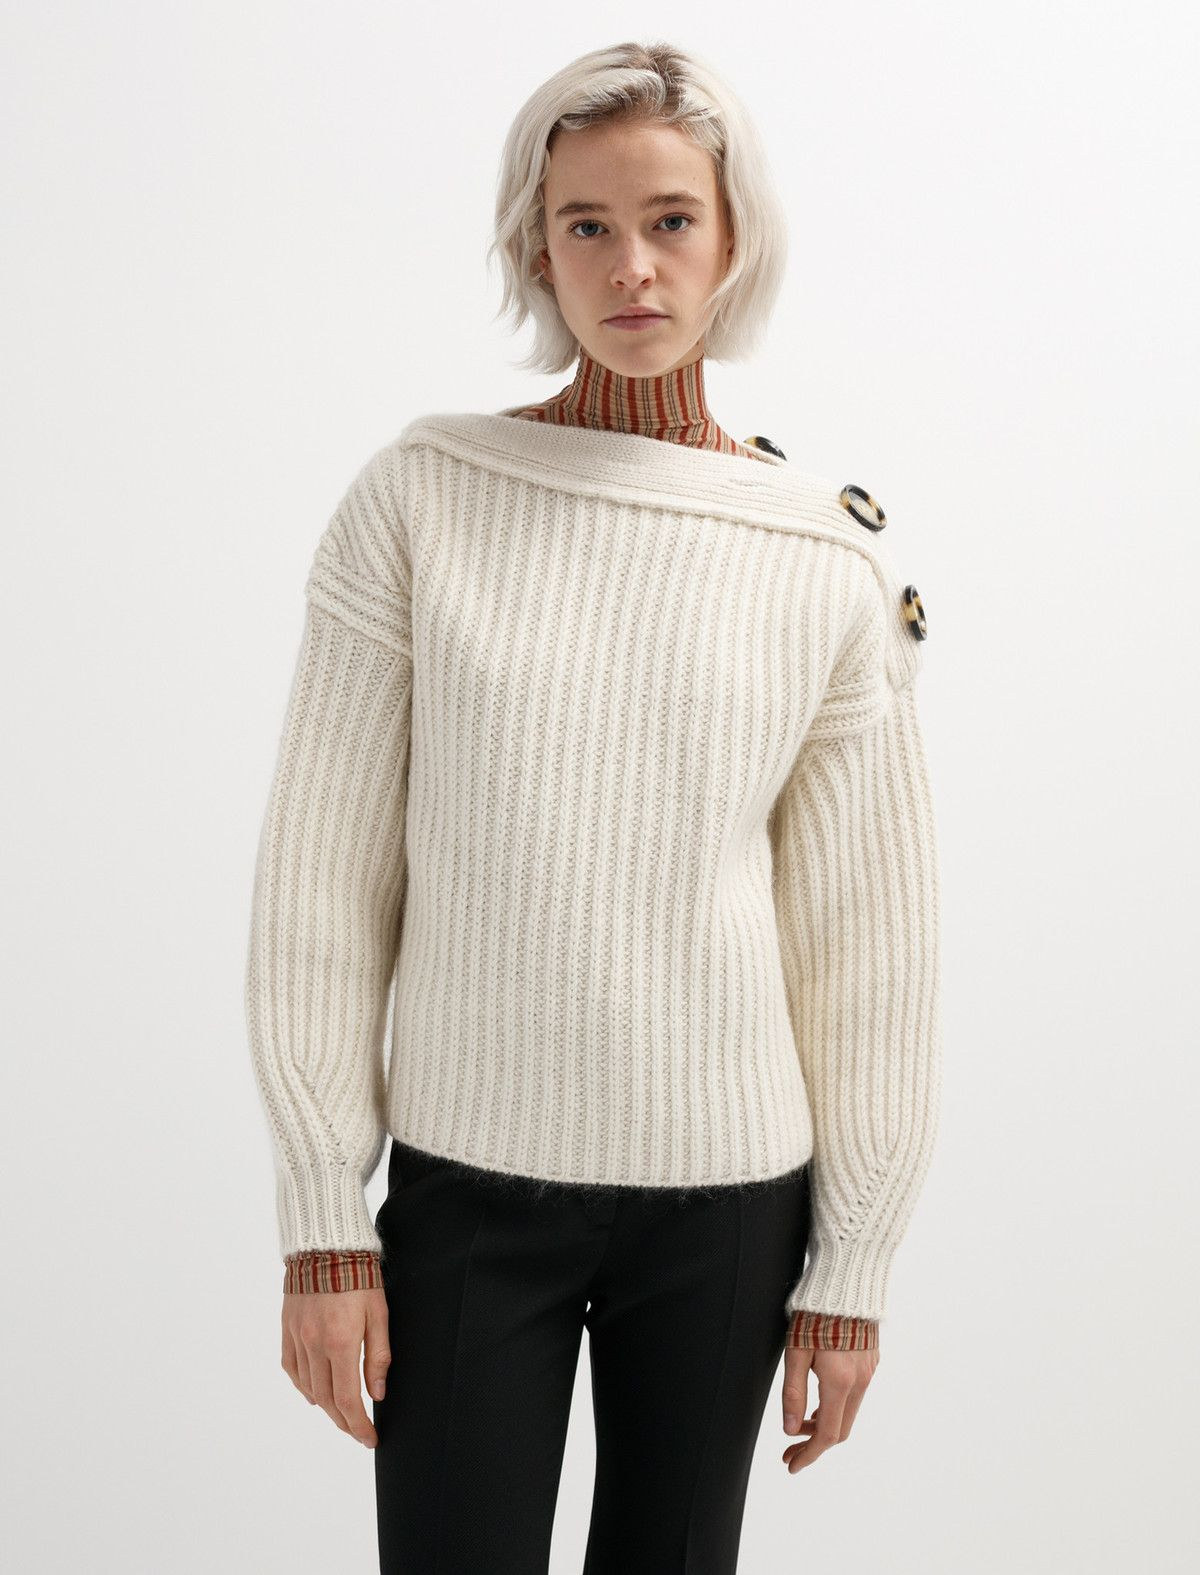 Sweater weather isn't even close to over so lucky for you we've got tons of them on sale. We love this voluminous sweater from Acne Studios. It's knit from soft wool and has four oversized buttons at the neckline that allow you to play with the opening. Also, the curved sleeves accentuate the play in volume which makes for a unique shape. This is a sale item definitely worth cozying up to.